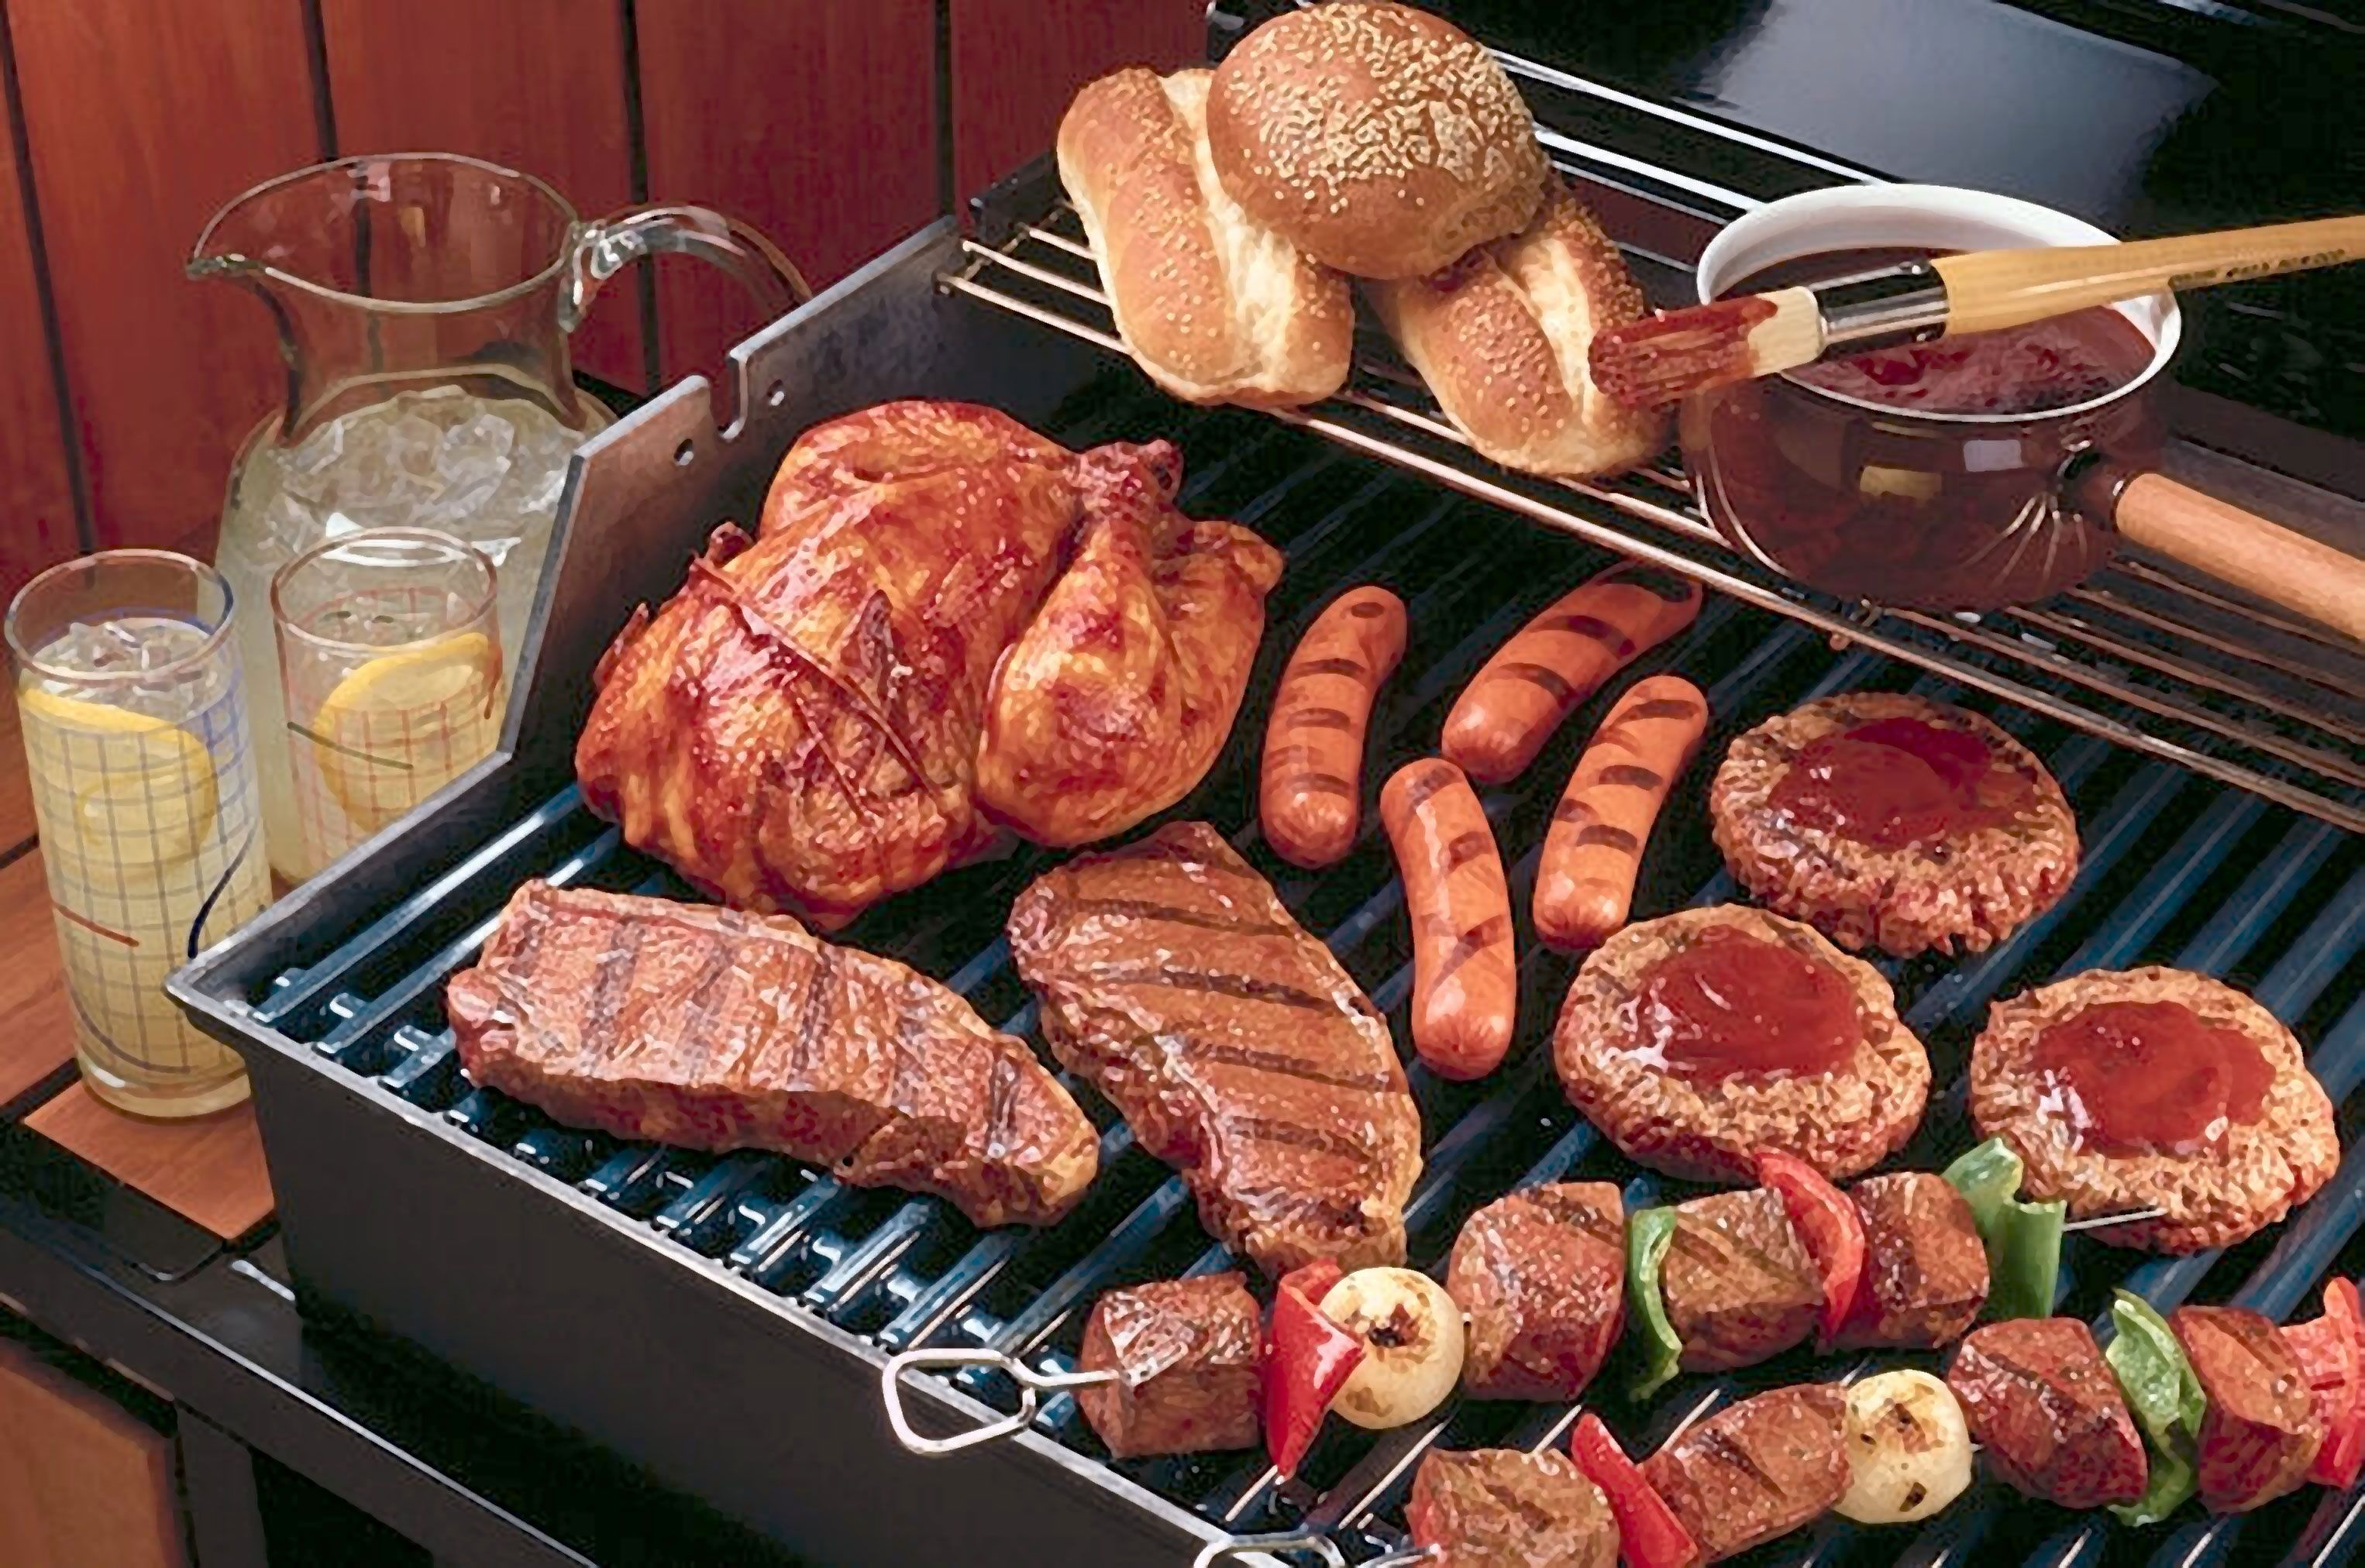 Bbq Is Definitely On My List For A Great Cdngetaway Activity Pork Recipes Bbq Recipes Food